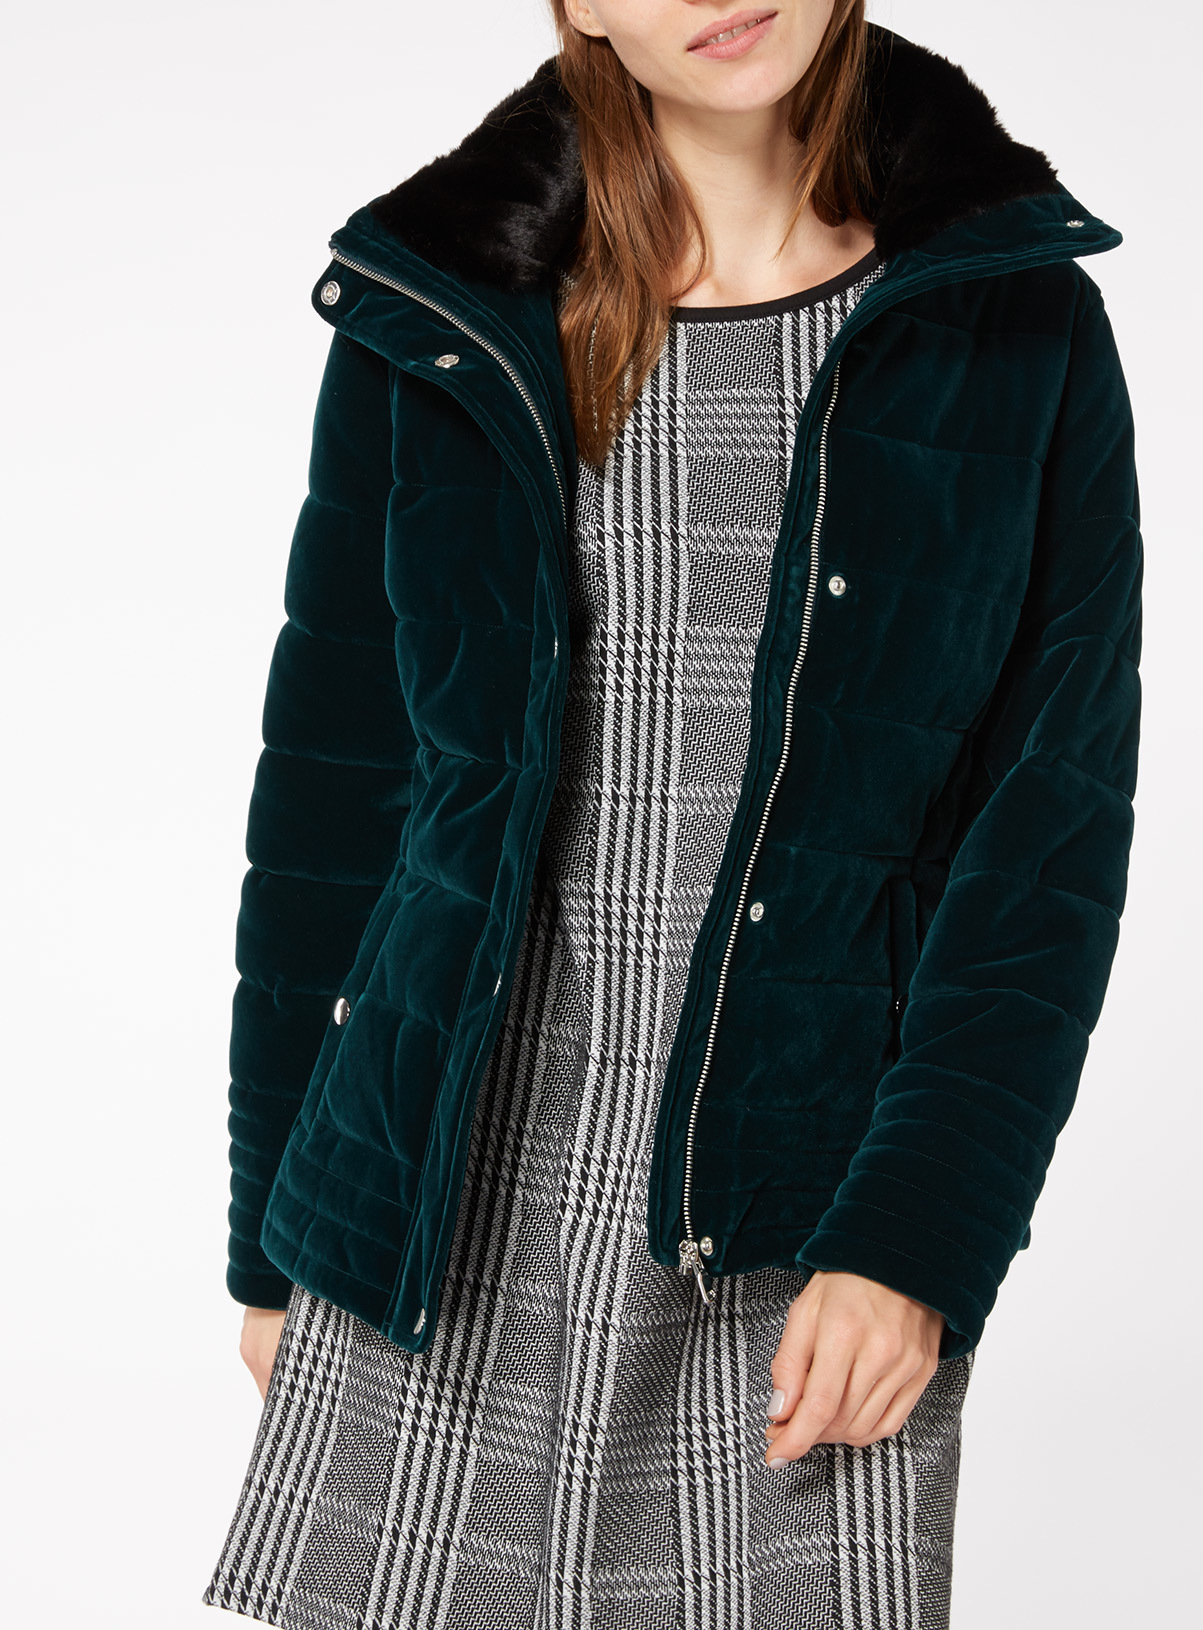 Womens Teal Velvet Quilted Padded jacket | Tu clothing : quilted padded coat - Adamdwight.com